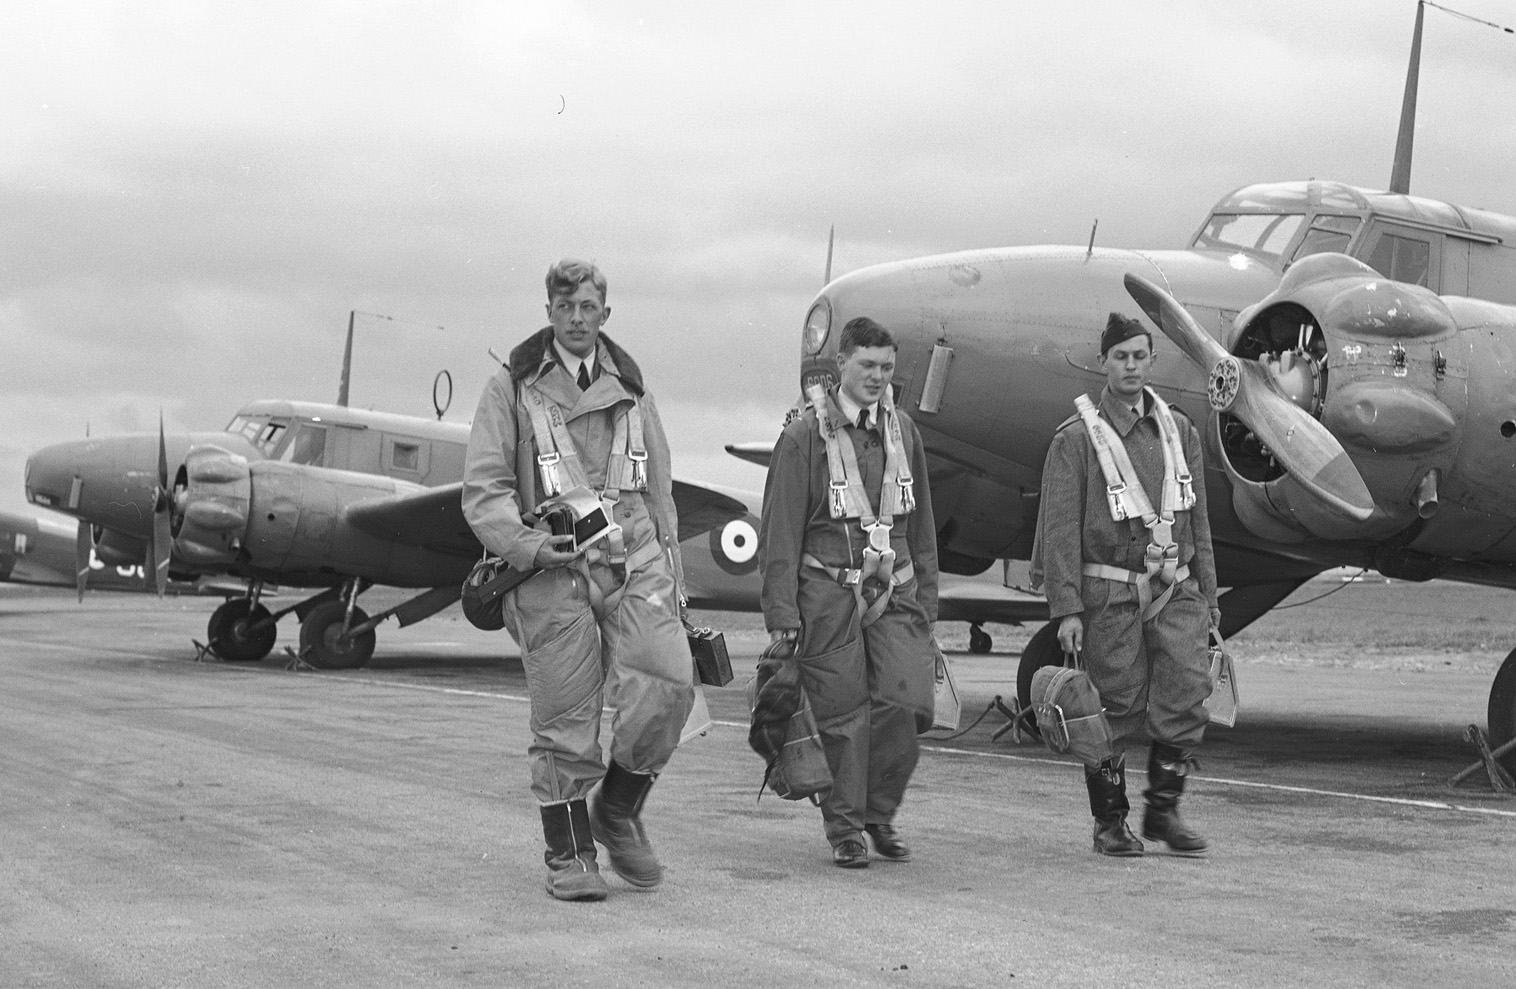 One of the photos on which the BCATP artwork on the 2016 Demonstration Hornet is based. In this photo, taken on June 4, 1941, at No. 1 Air Navigation School in Rivers, Manitoba, a trio of Commonwealth airmen walk down a line of Avro Ansons to the aircraft that will carry them on a navigation training flight. From left to right are Sergeant J. A. Mahood, Royal Air Force, Sergeant E.M.D. Romilly, Royal Canadian Air Force, and Sergeant W.H. Betts, Royal Australian Air Force. PHOTO: PL-3738, DND Archives